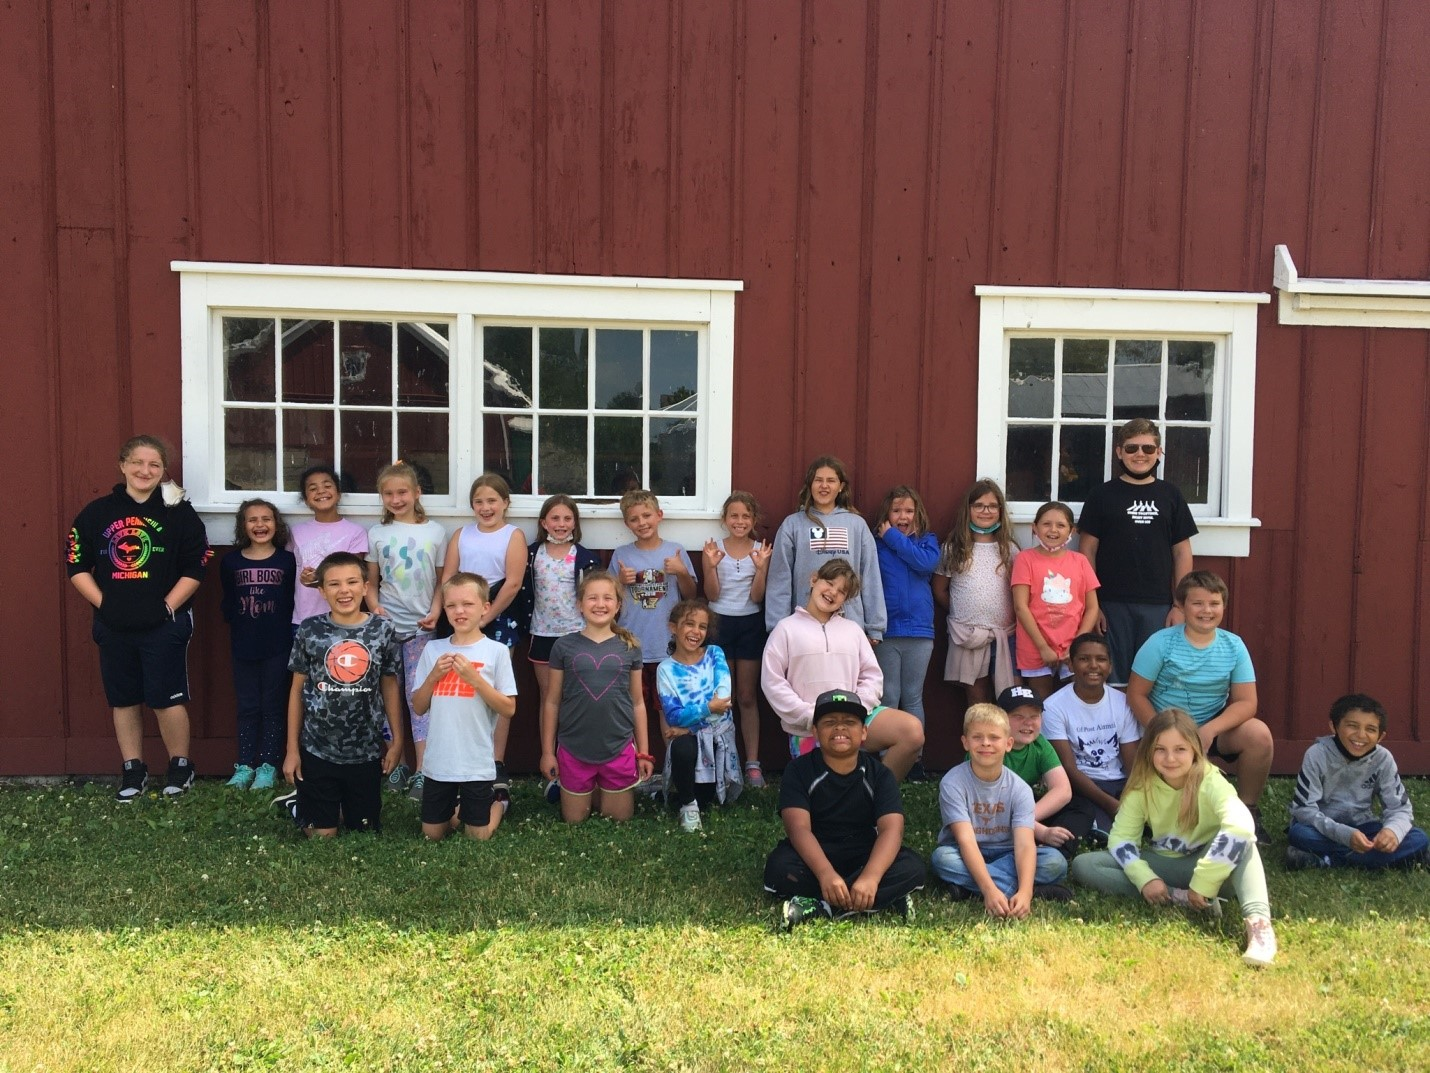 Dickson-Murst Farm Camp Mixes History and Fun for Kids